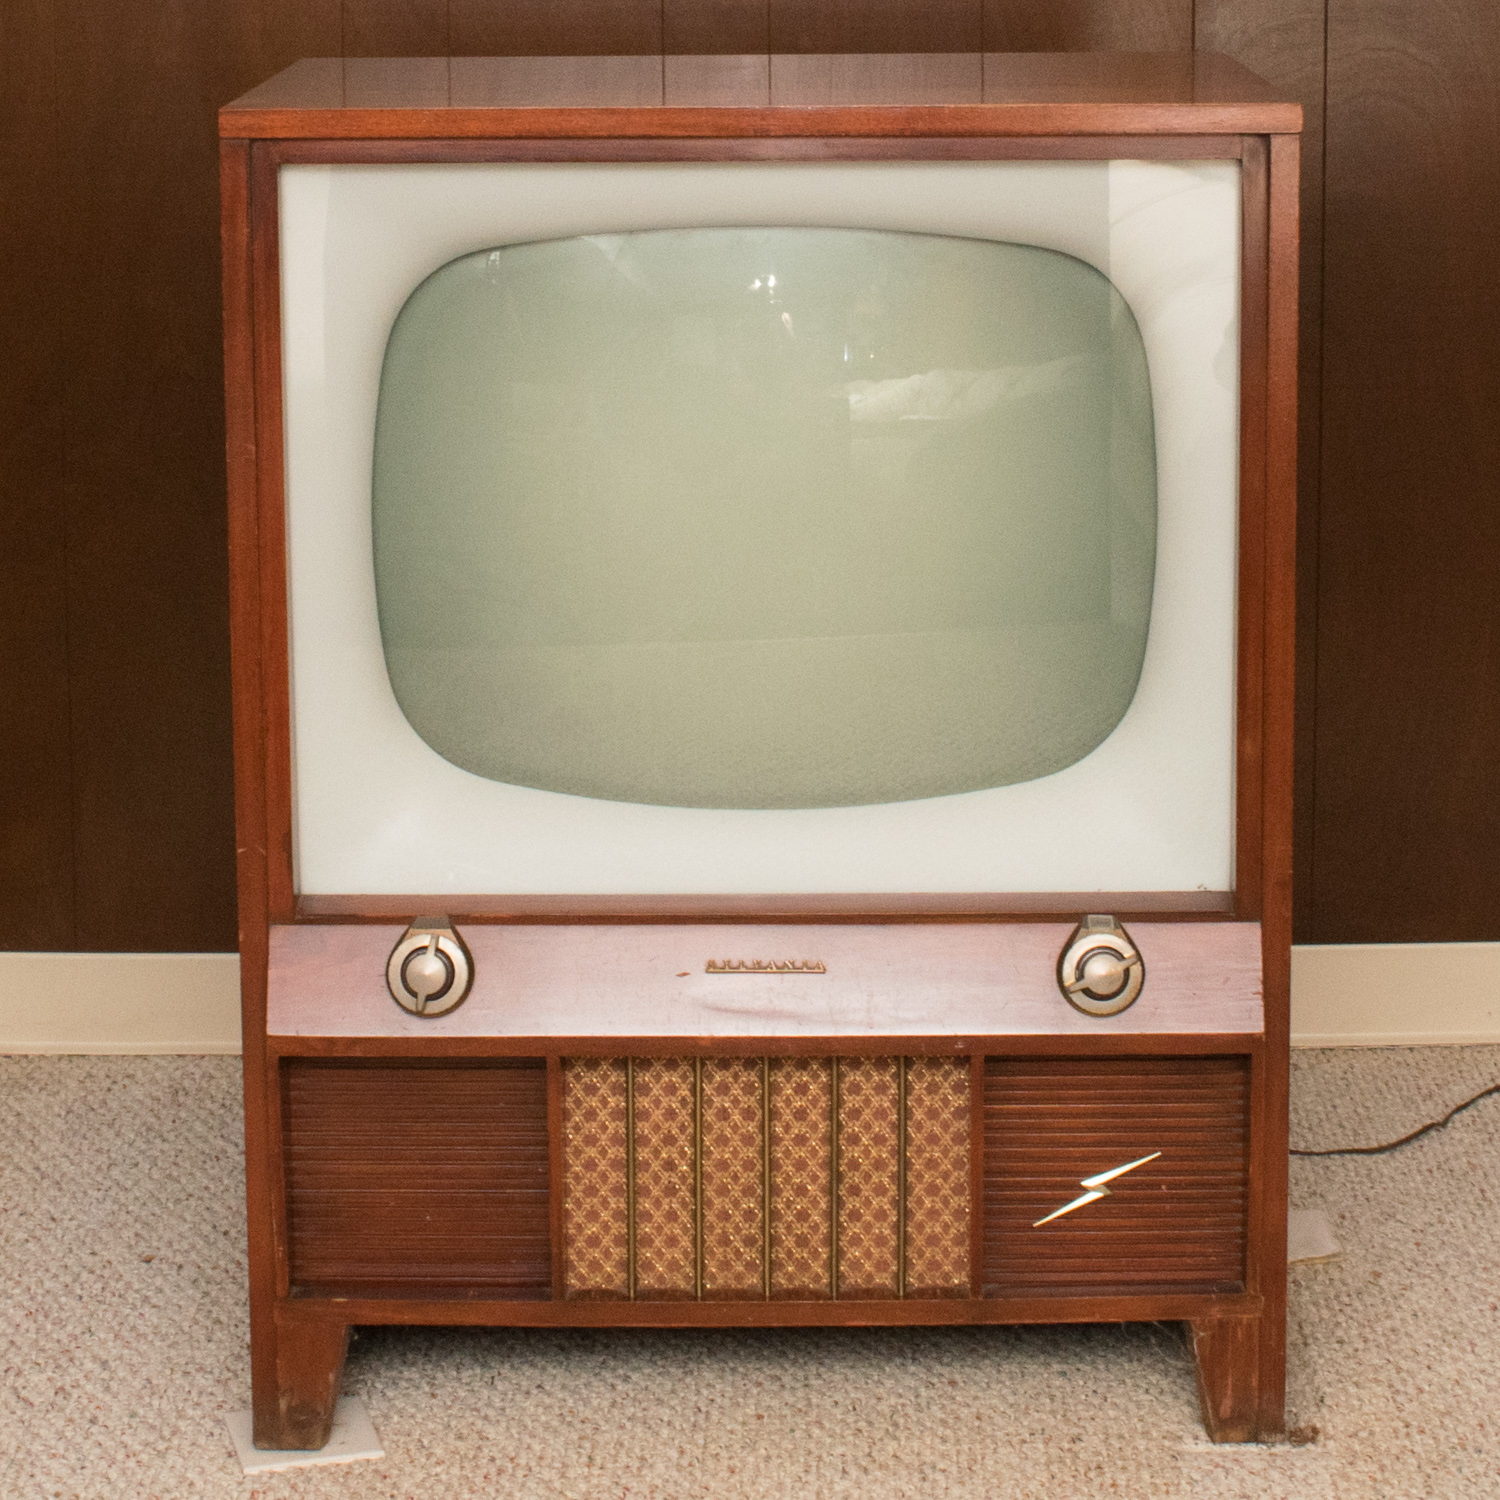 1950s Sylvania Television With Halolight